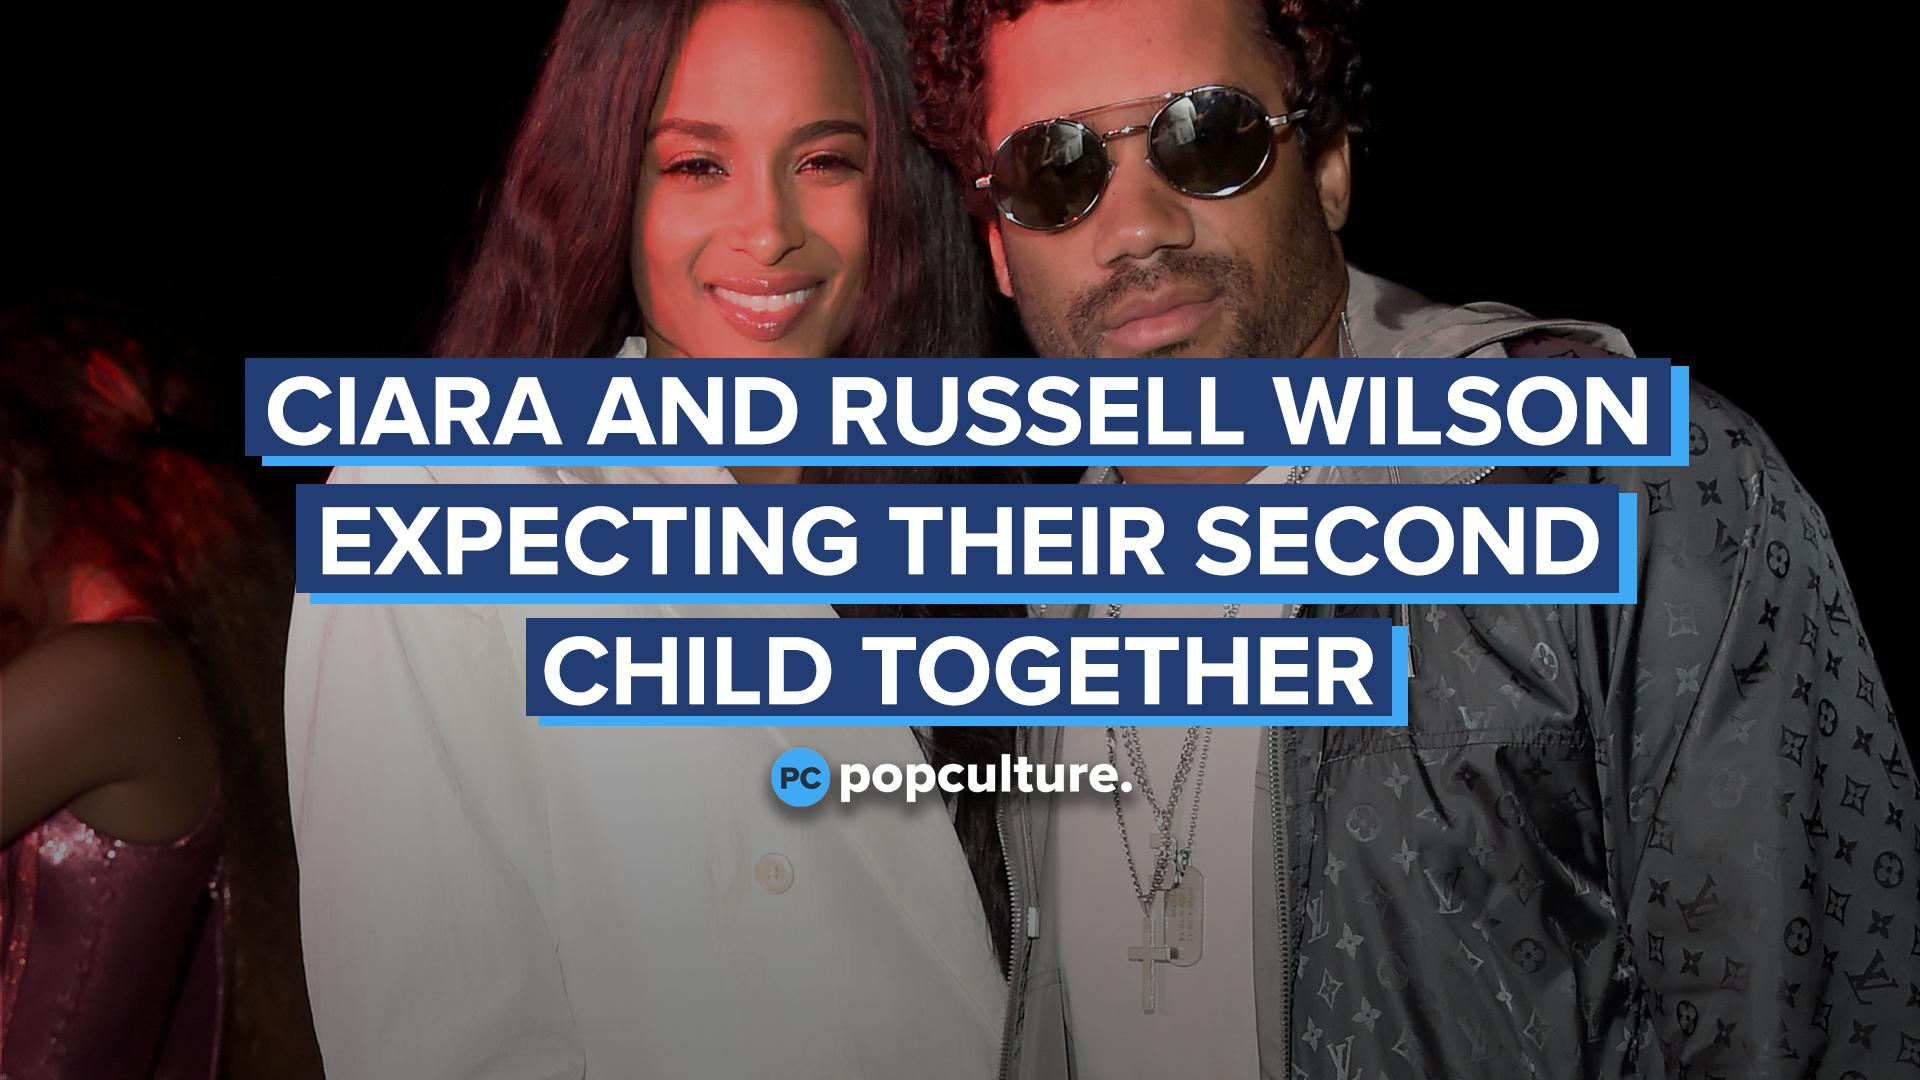 Ciara and Russell Wilson Expecting Their Second Child Together screen capture